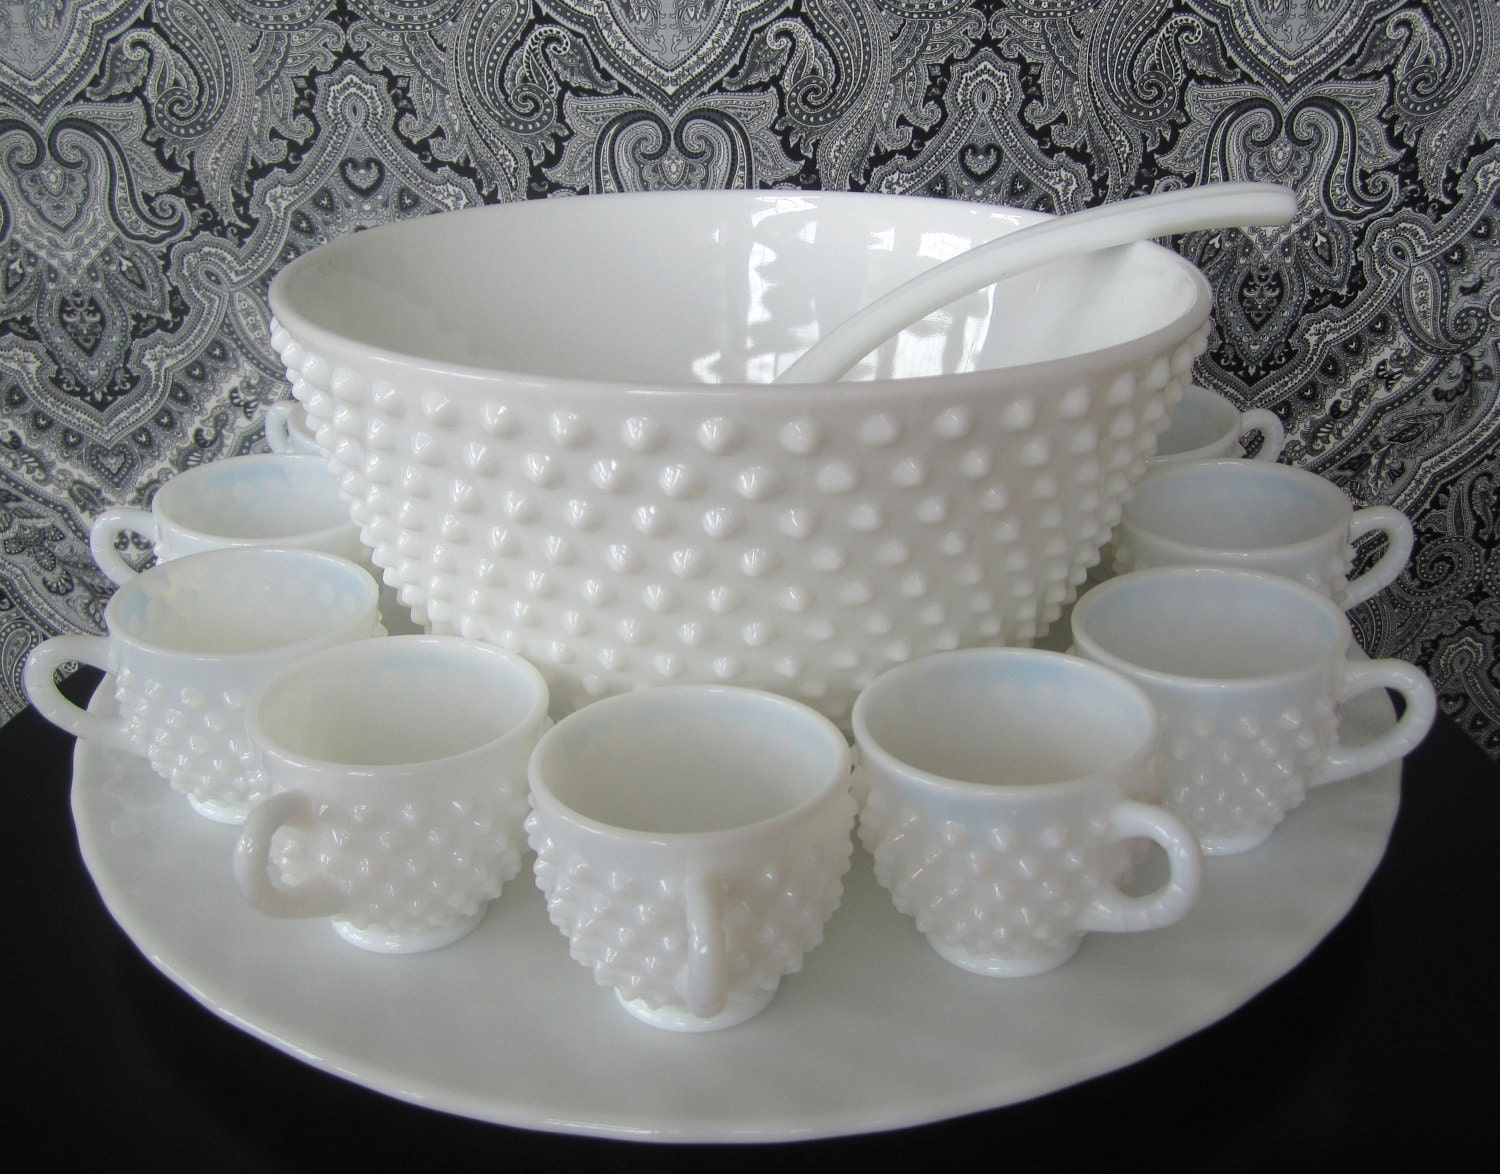 fenton hobnail milk glass punch bowl set vintage by junkingforjoy. Black Bedroom Furniture Sets. Home Design Ideas